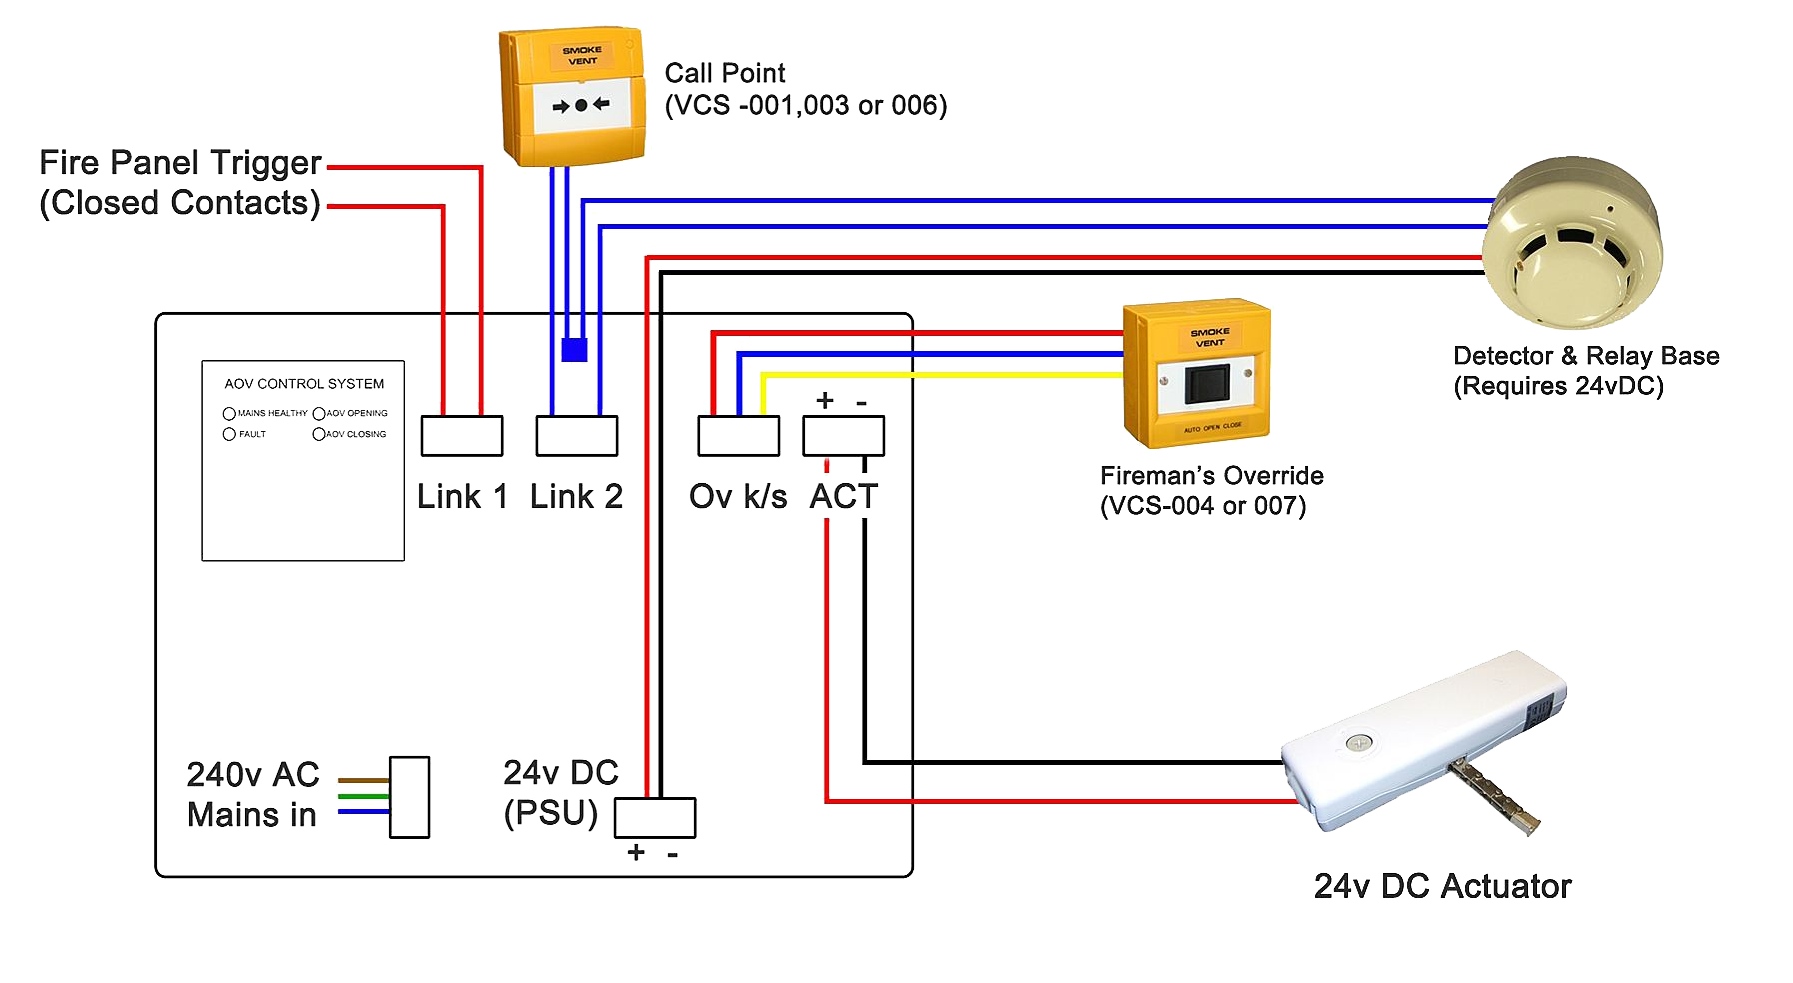 2 Line Phone Systems Wiring Diagram on two way audio line cable